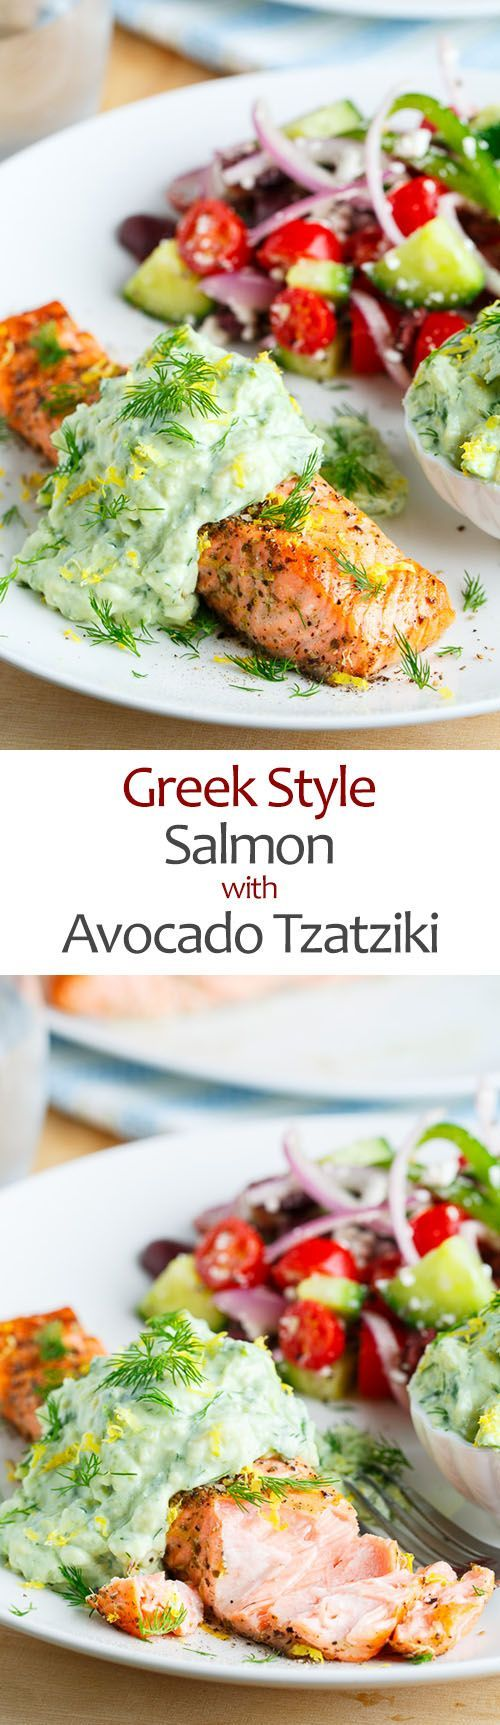 Greek Style Salmon with Avocado Tzatziki